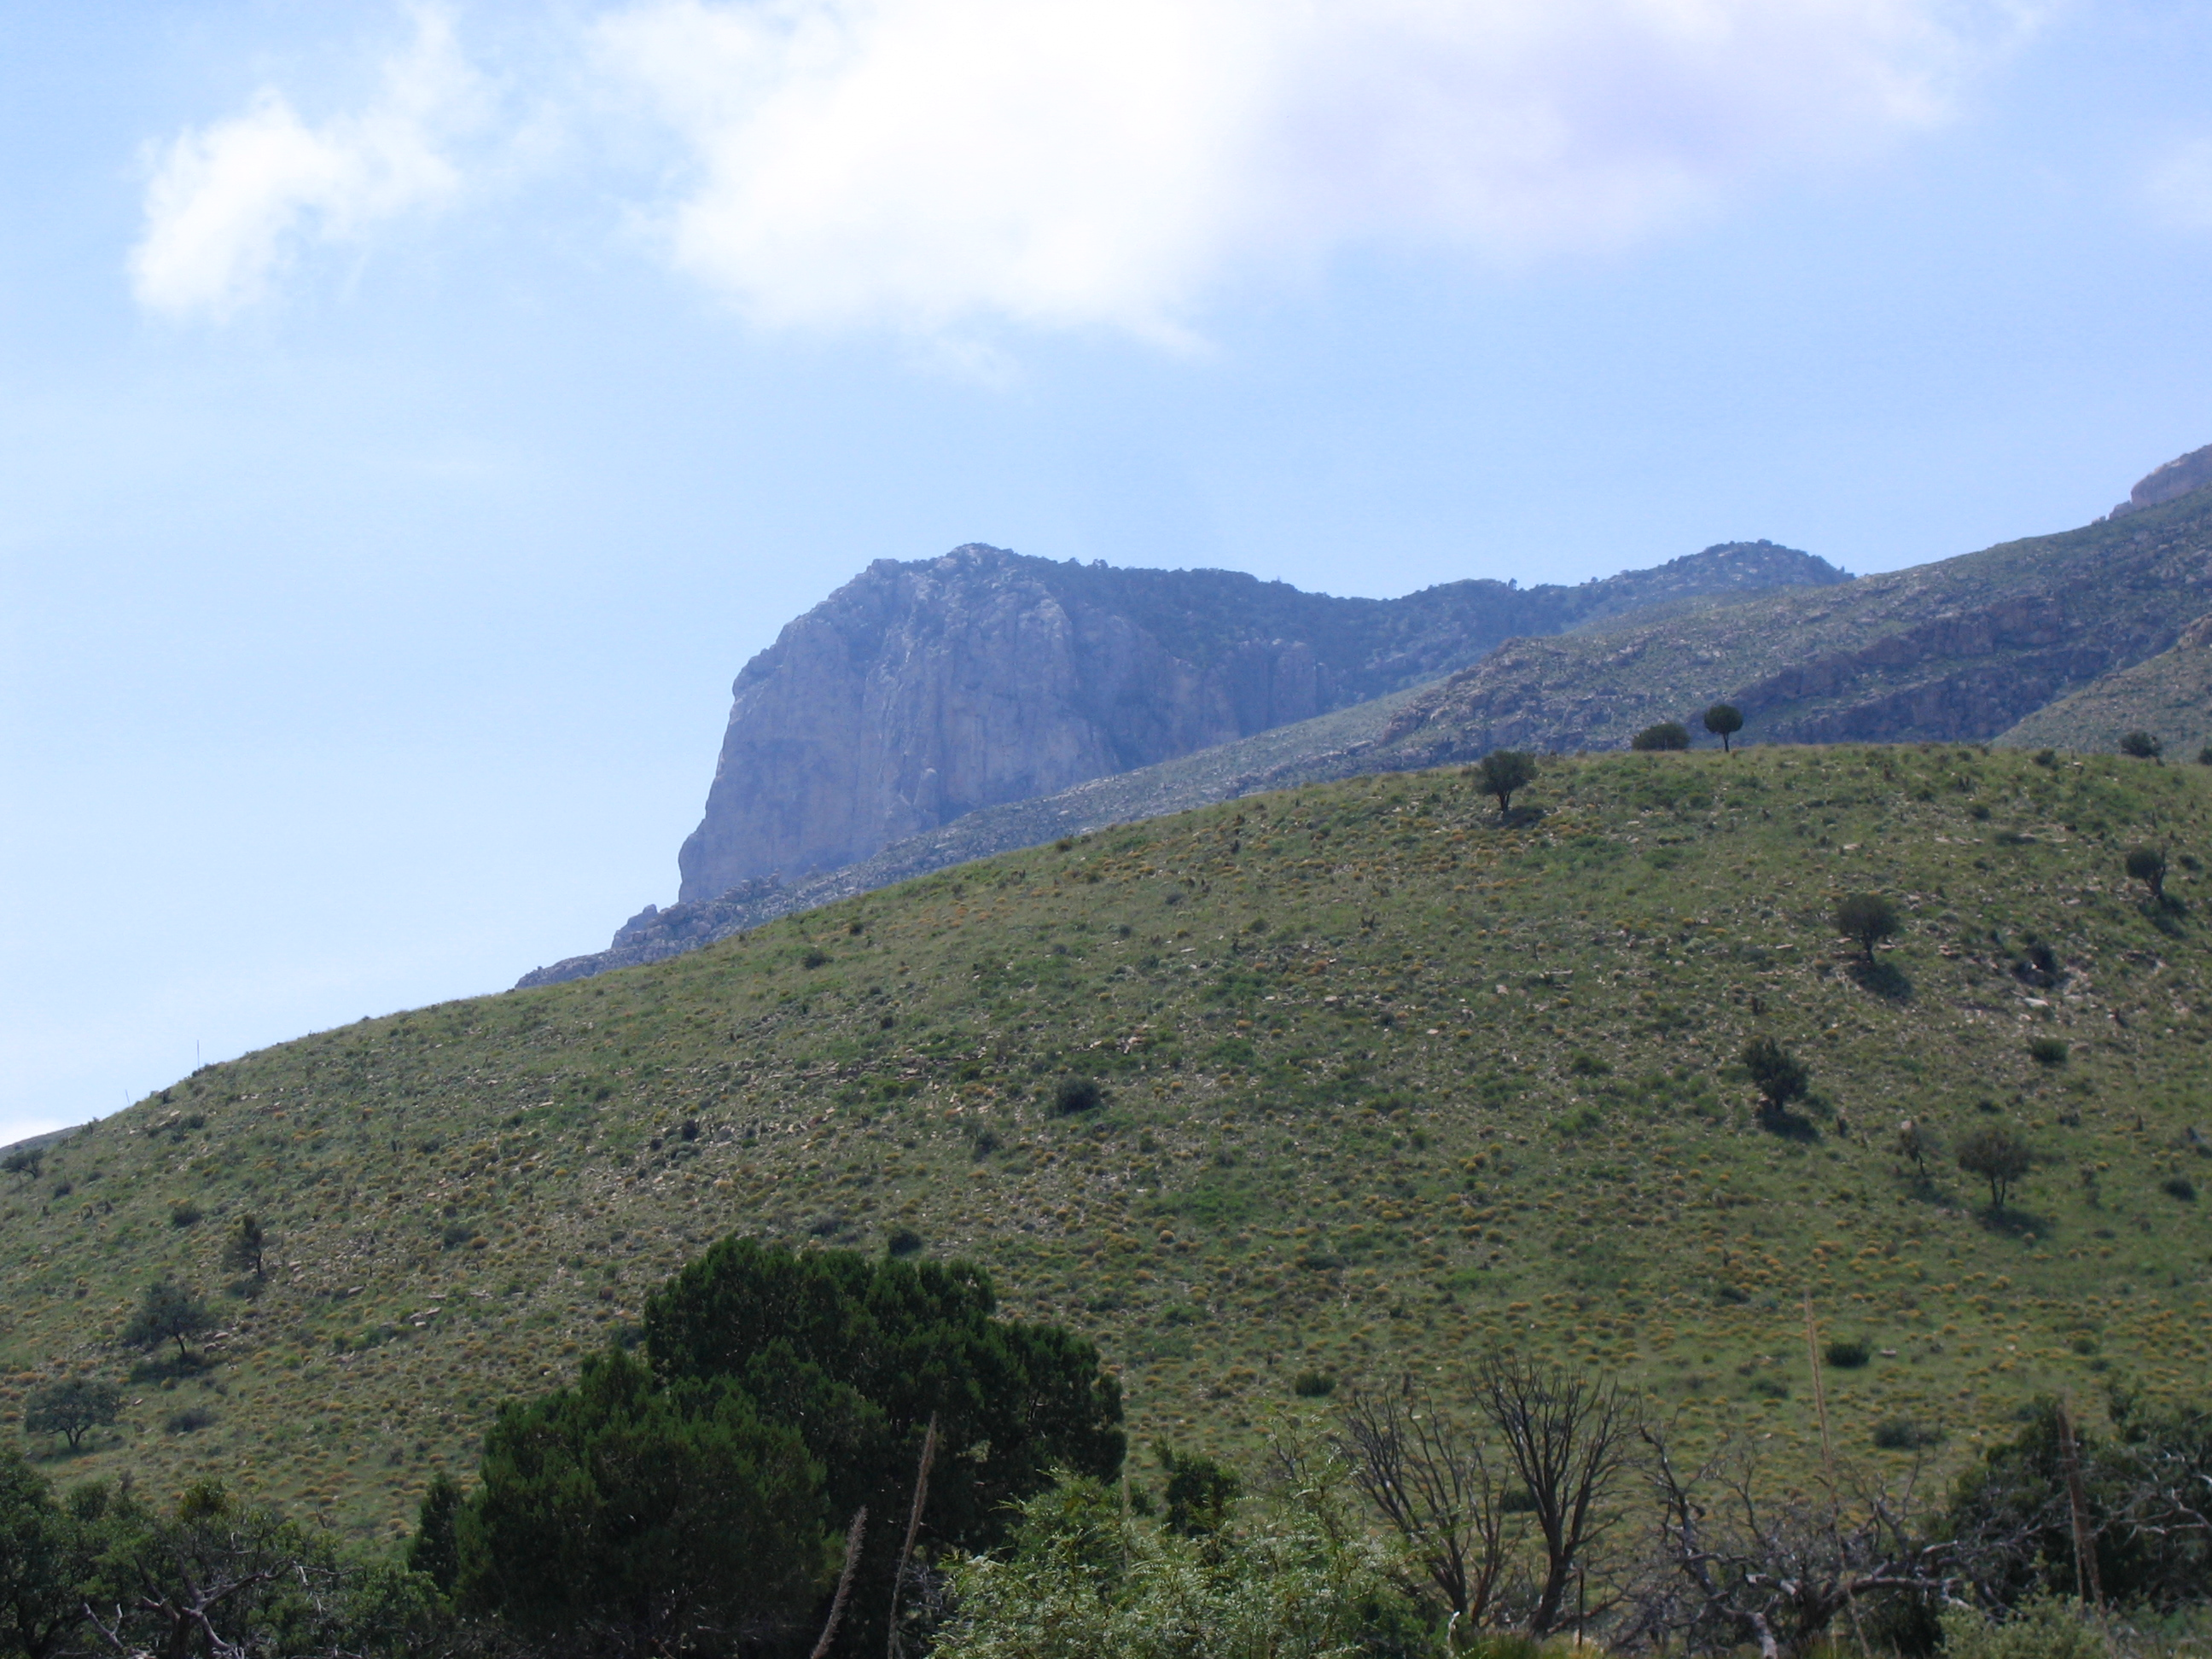 IMG_3471.jpg - Guadalupe National Park